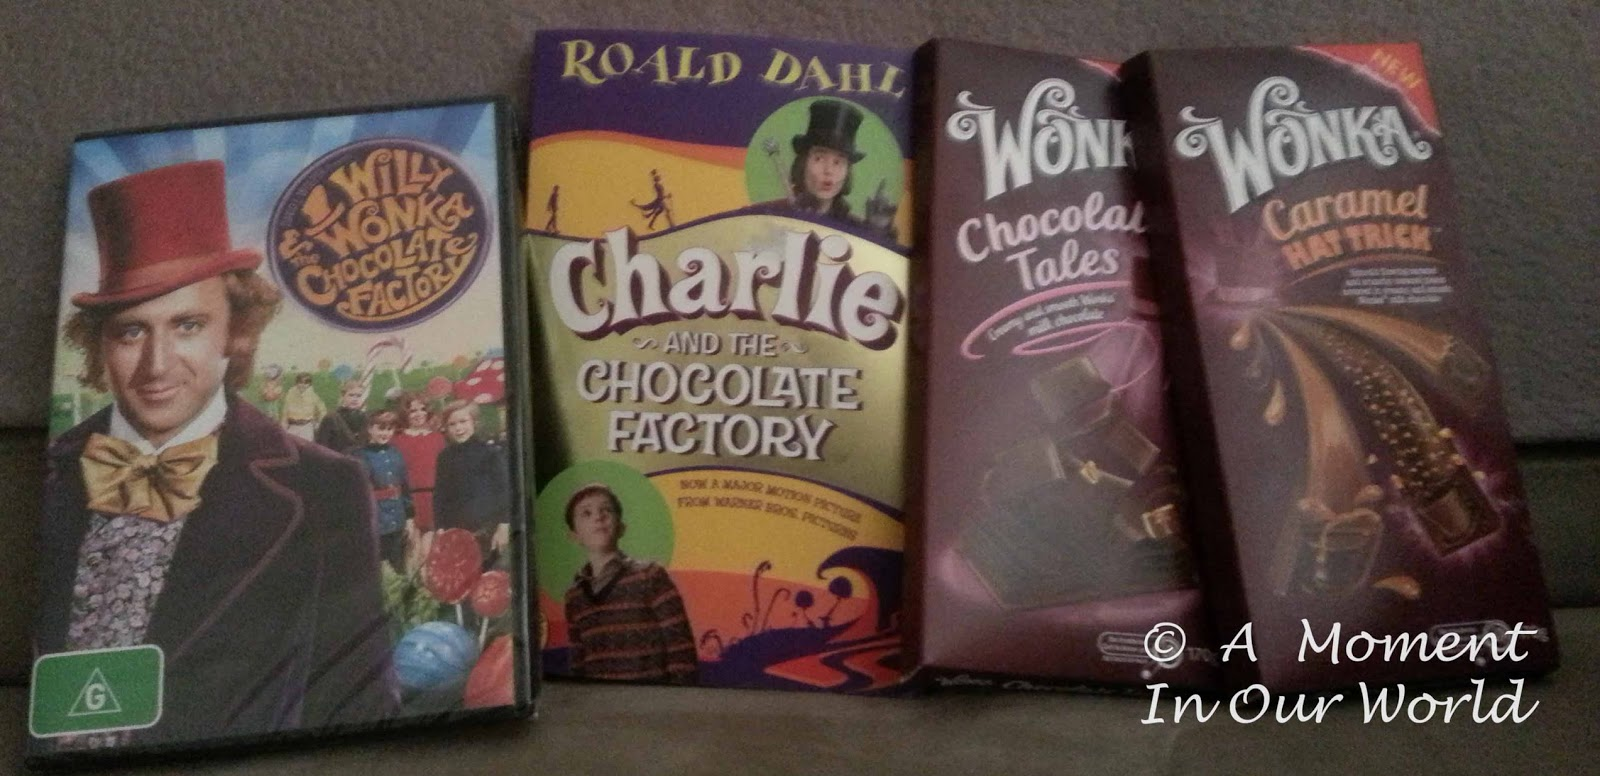 willy wonka charlie and the chocolate factory a moment in our world we watched the old version of the movie and ate some of the willy wonka chocolate that you can now at woolworths and coles